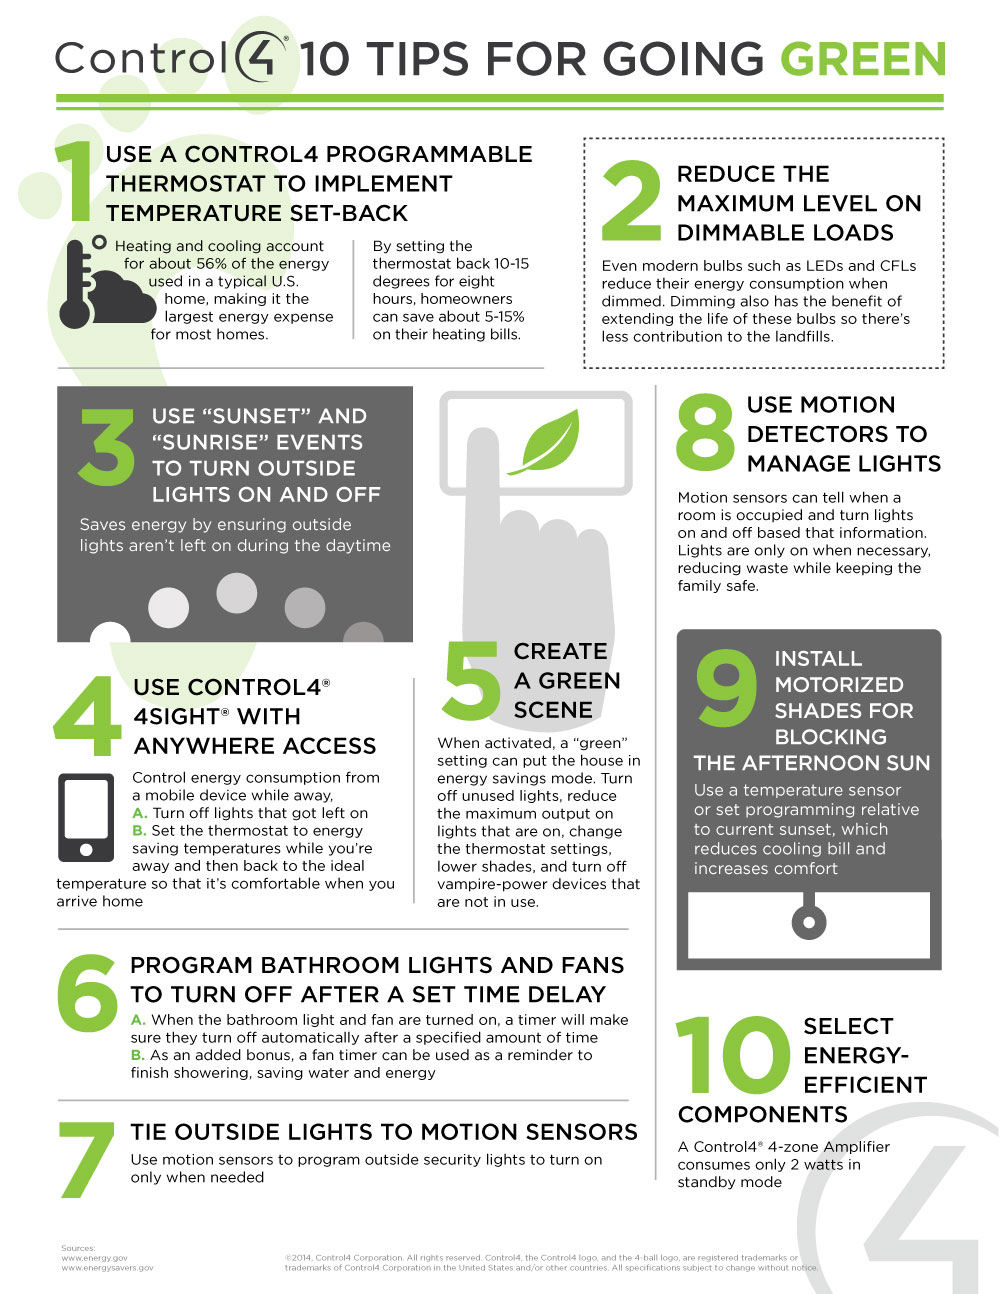 Tips for Energy Management [INFOGRAPHIC]: